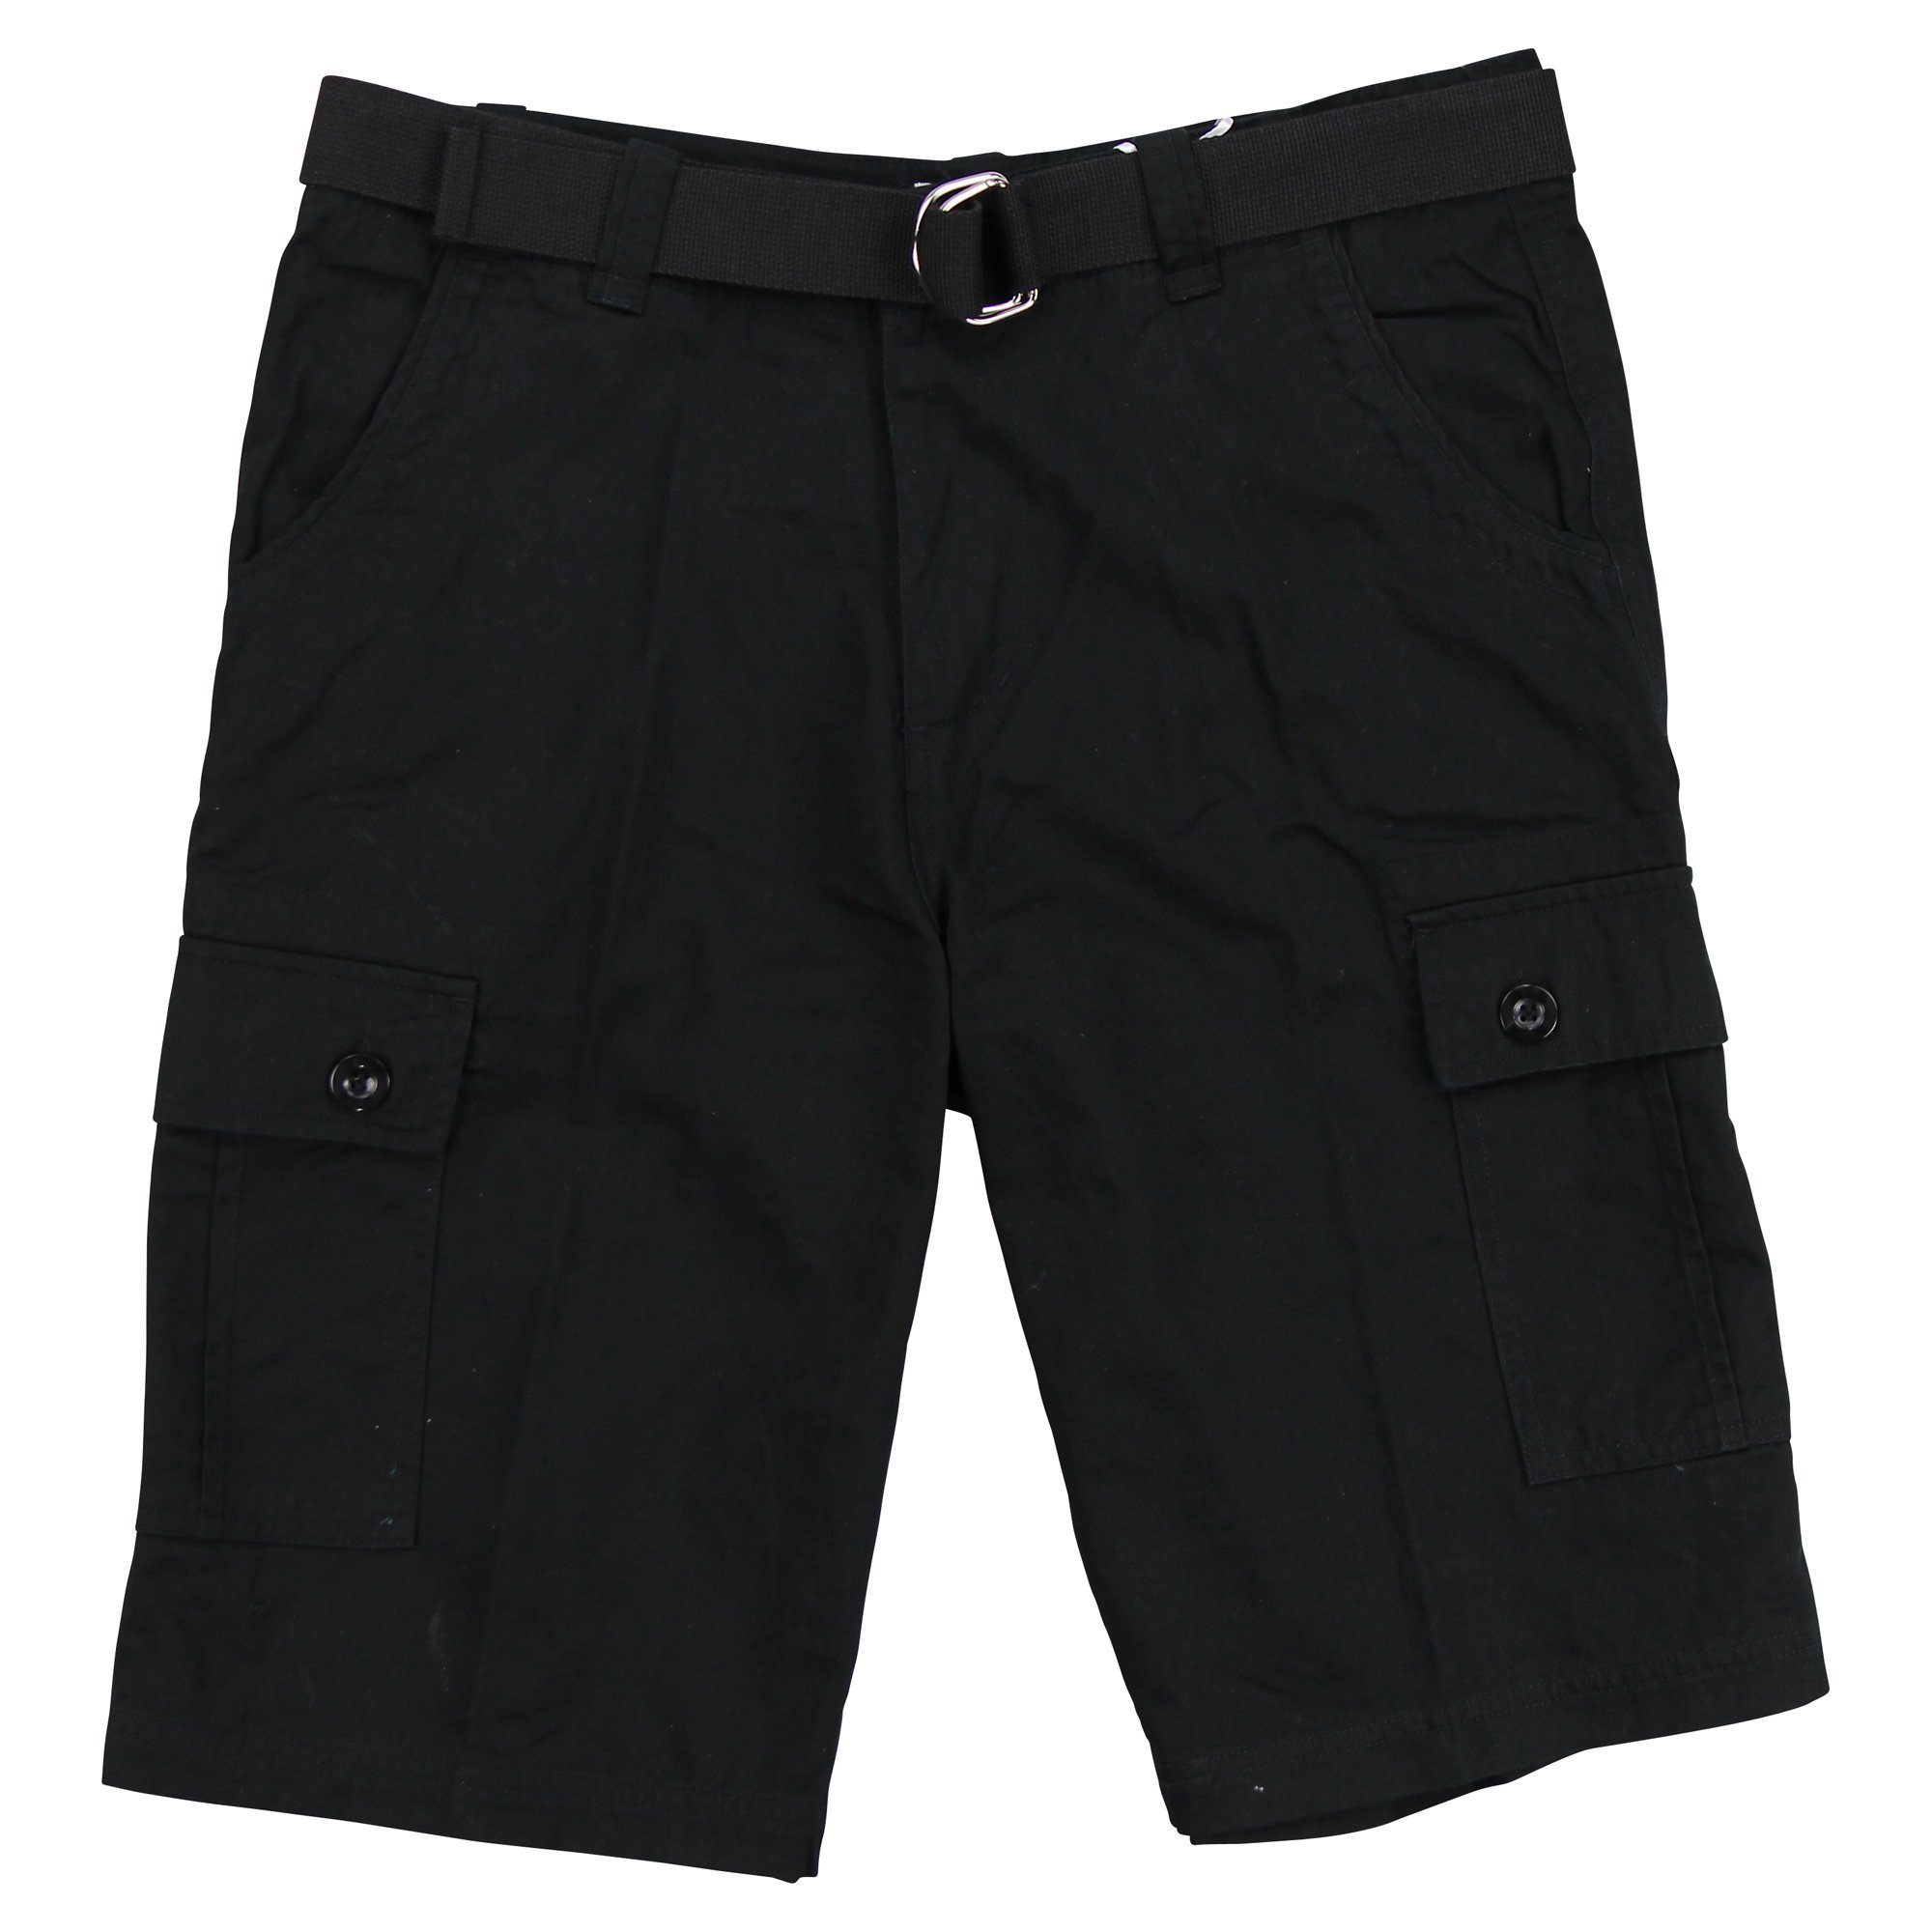 One Tough Brand(OTB) Mens Belted Cotton Cargo Short (Black, 30)